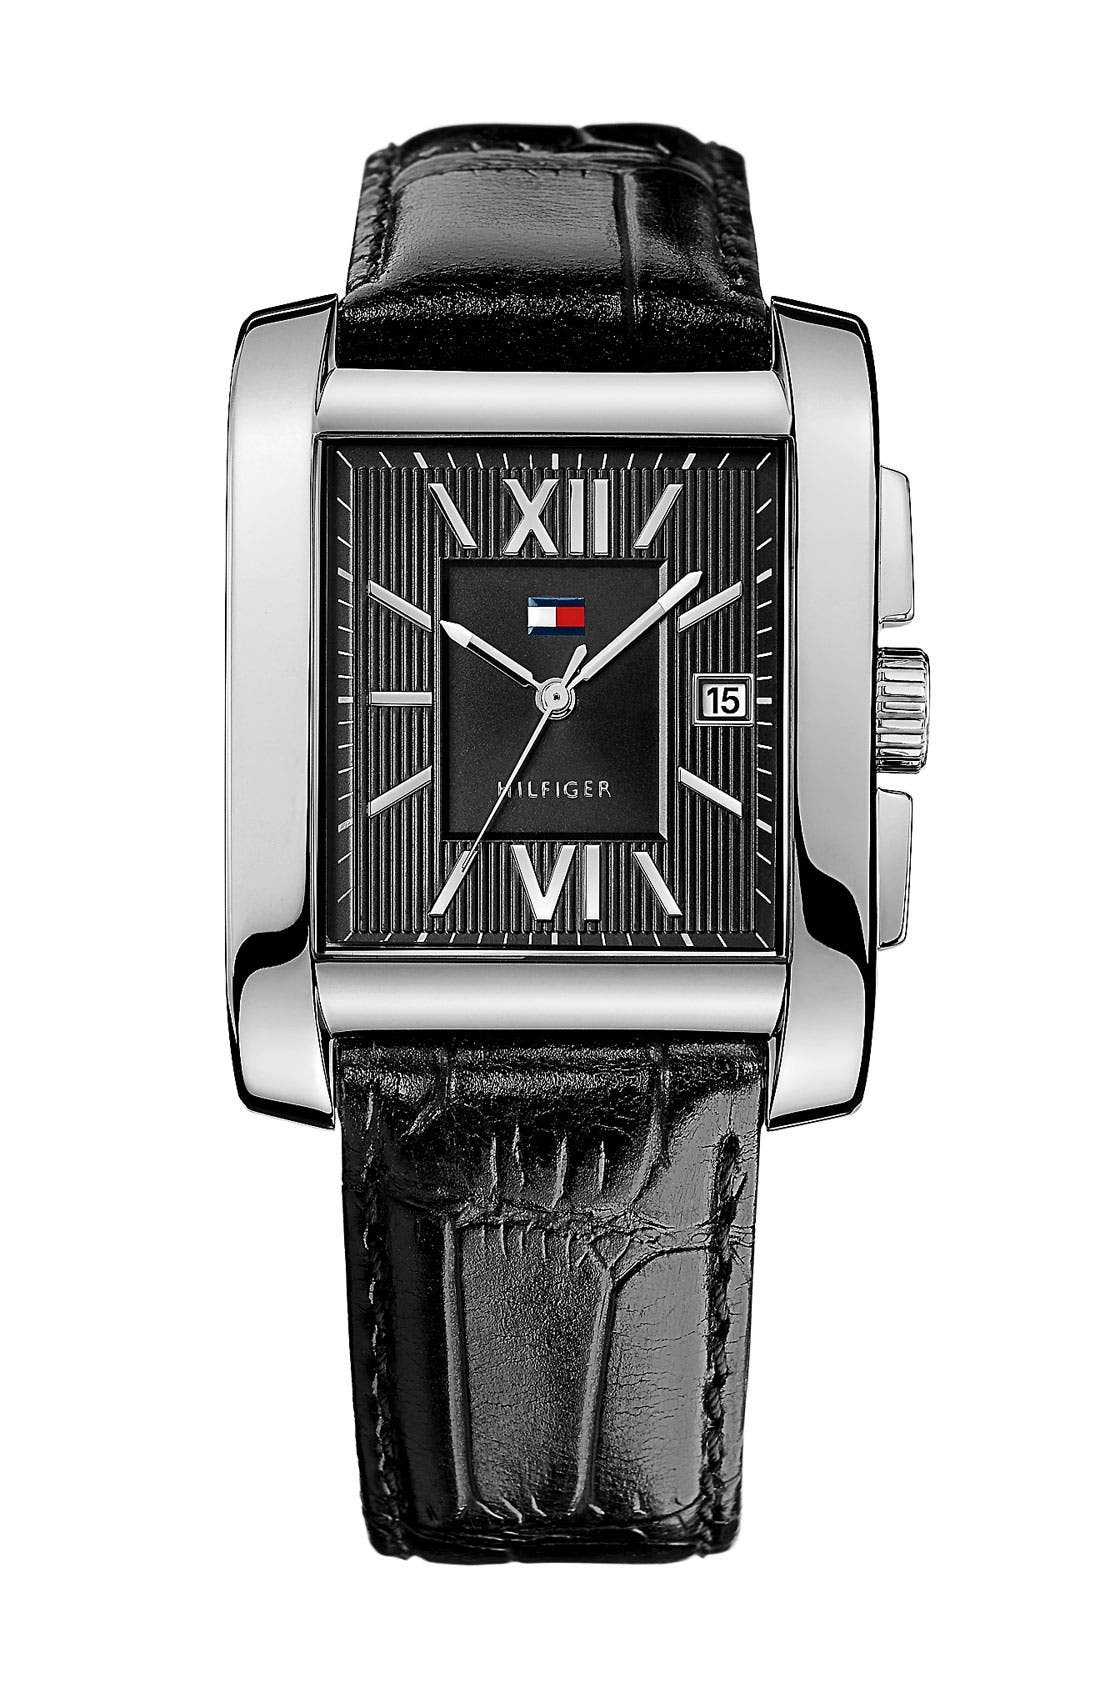 Alternate Image 1 Selected - Tommy Hilfiger Square Leather Strap Watch, 36mm x 47mm